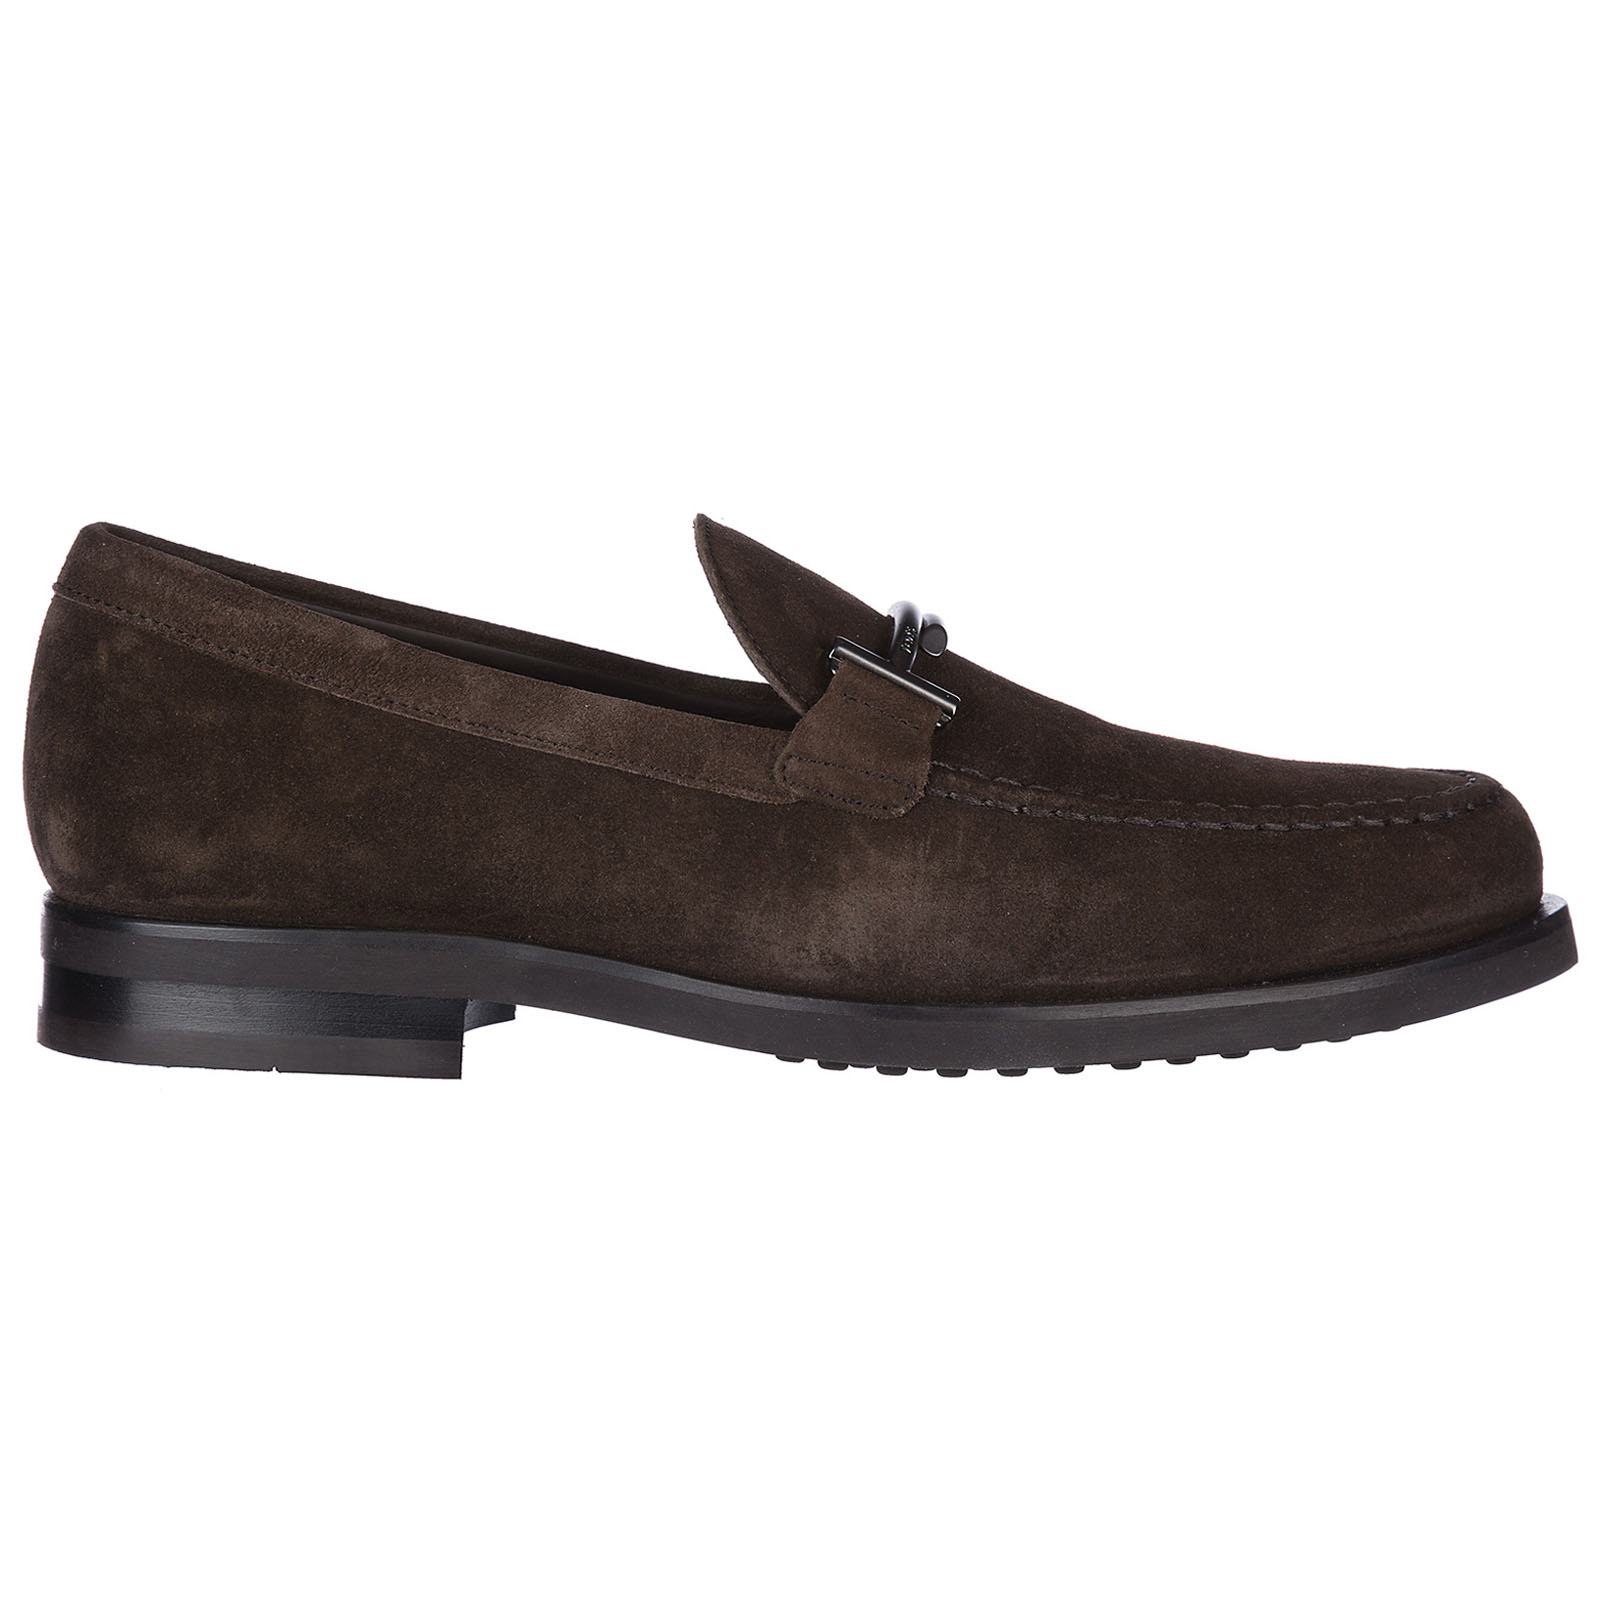 Wildleder mokassins herren slipper double t